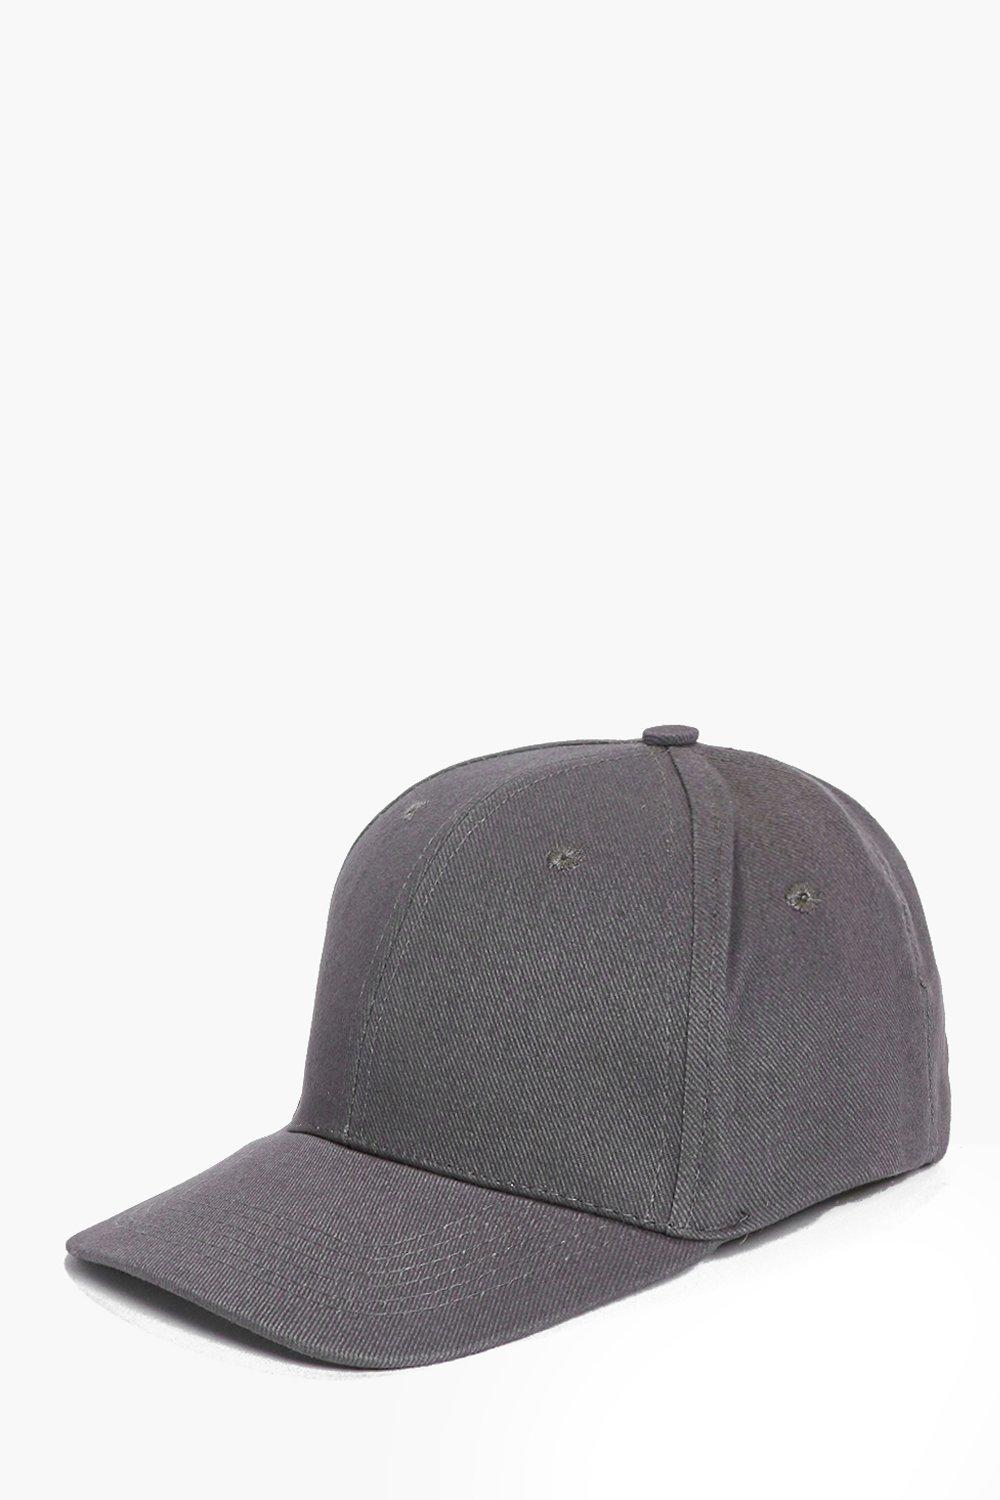 Slate Grey Plain Baseball Cap